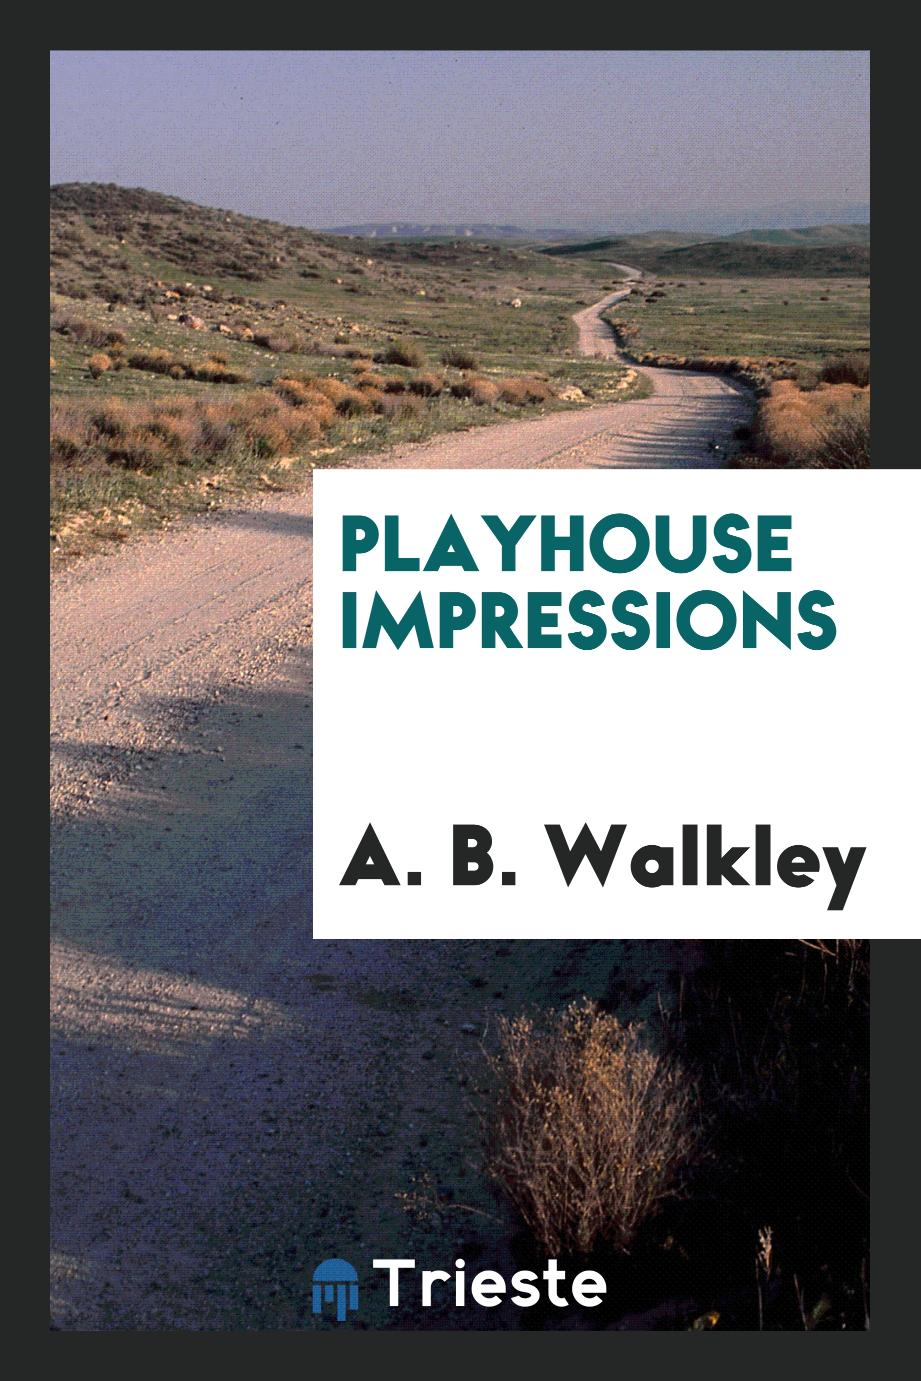 Playhouse impressions